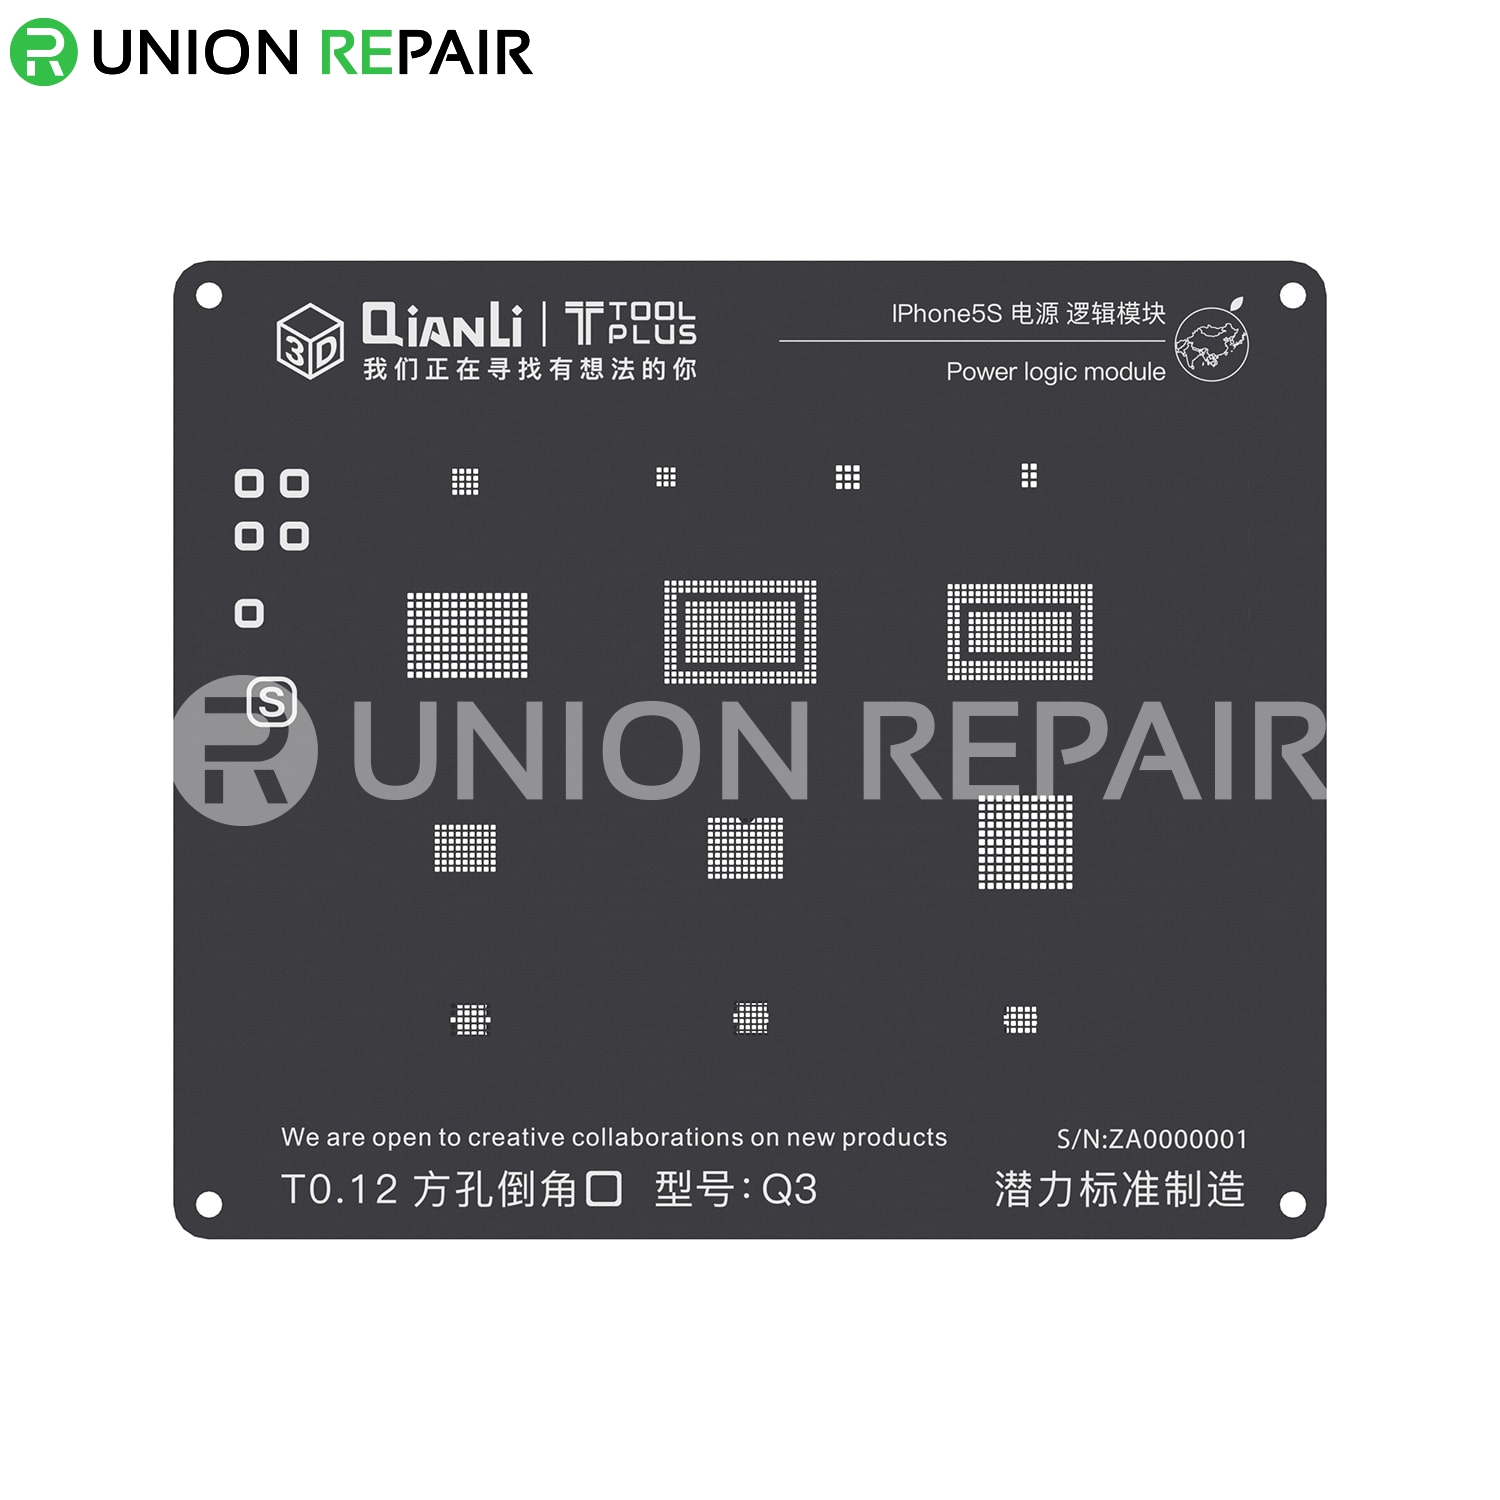 QianLi ToolPlus 3D iBlack iPhone Power Logic Module BGA Reballing Black Stencil, Type: For 5S Q3